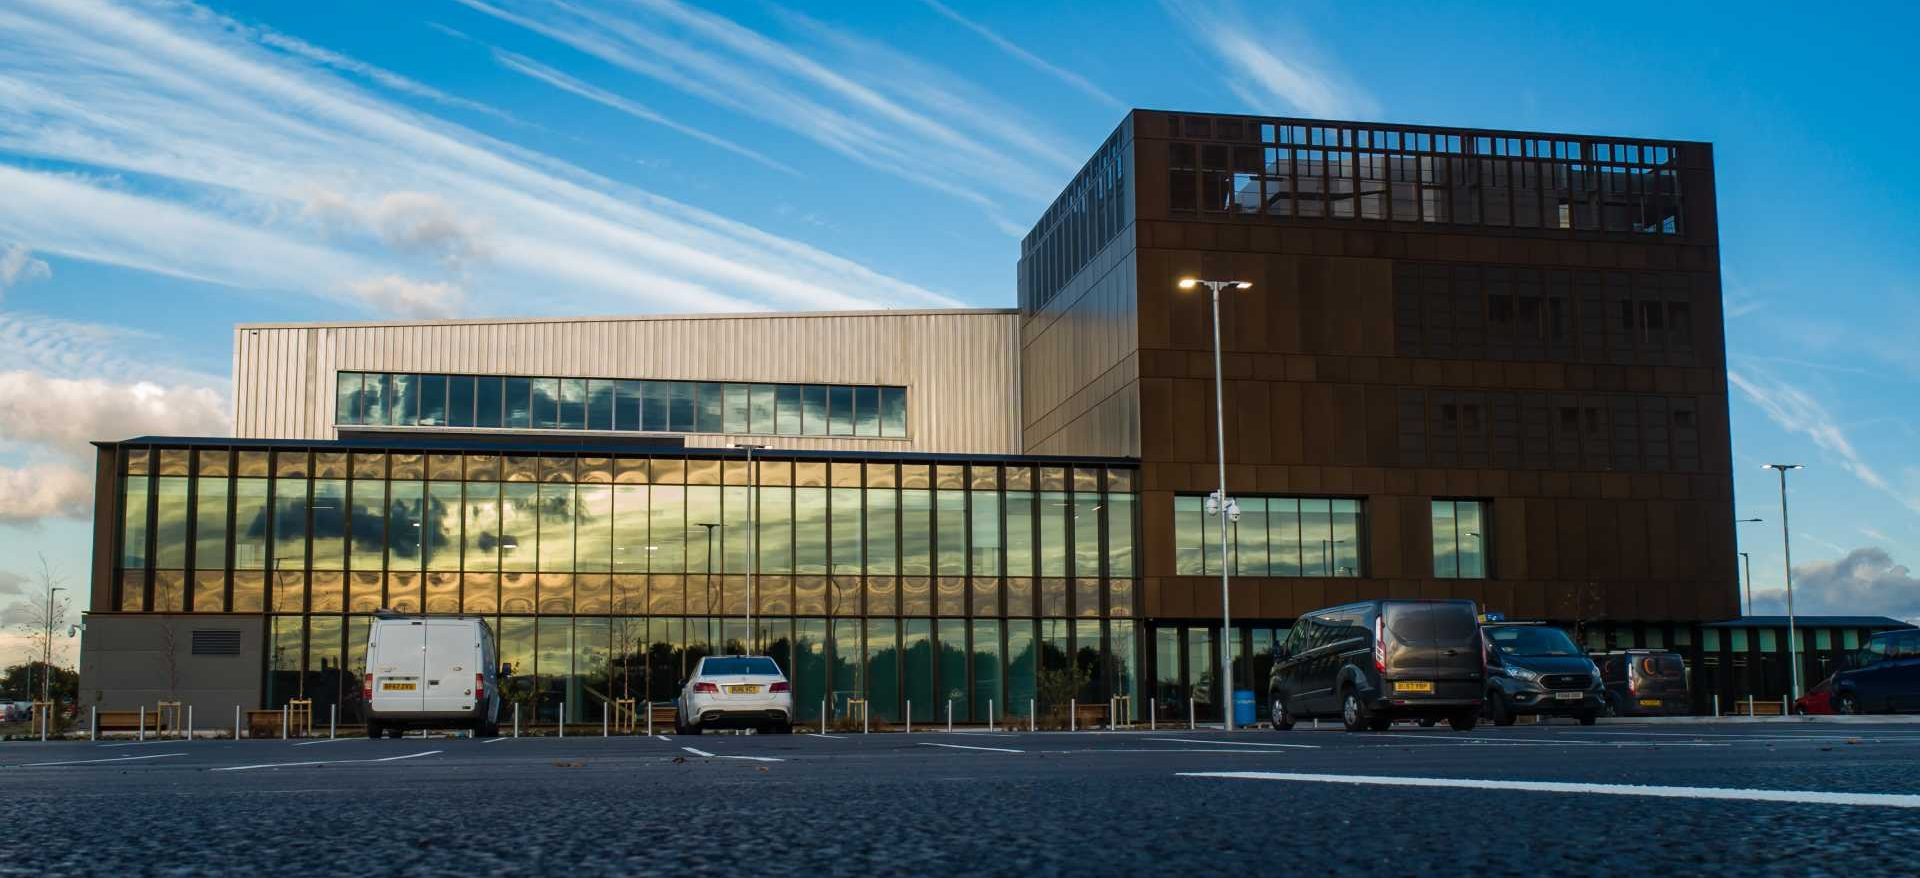 Opened in November 2019, AMRC Cymru is situated in the Deeside Enterprise Zone in Broughton, and focuses on advanced manufacturing sectors including aerospace, automotive, nuclear and food. Image: HVMC